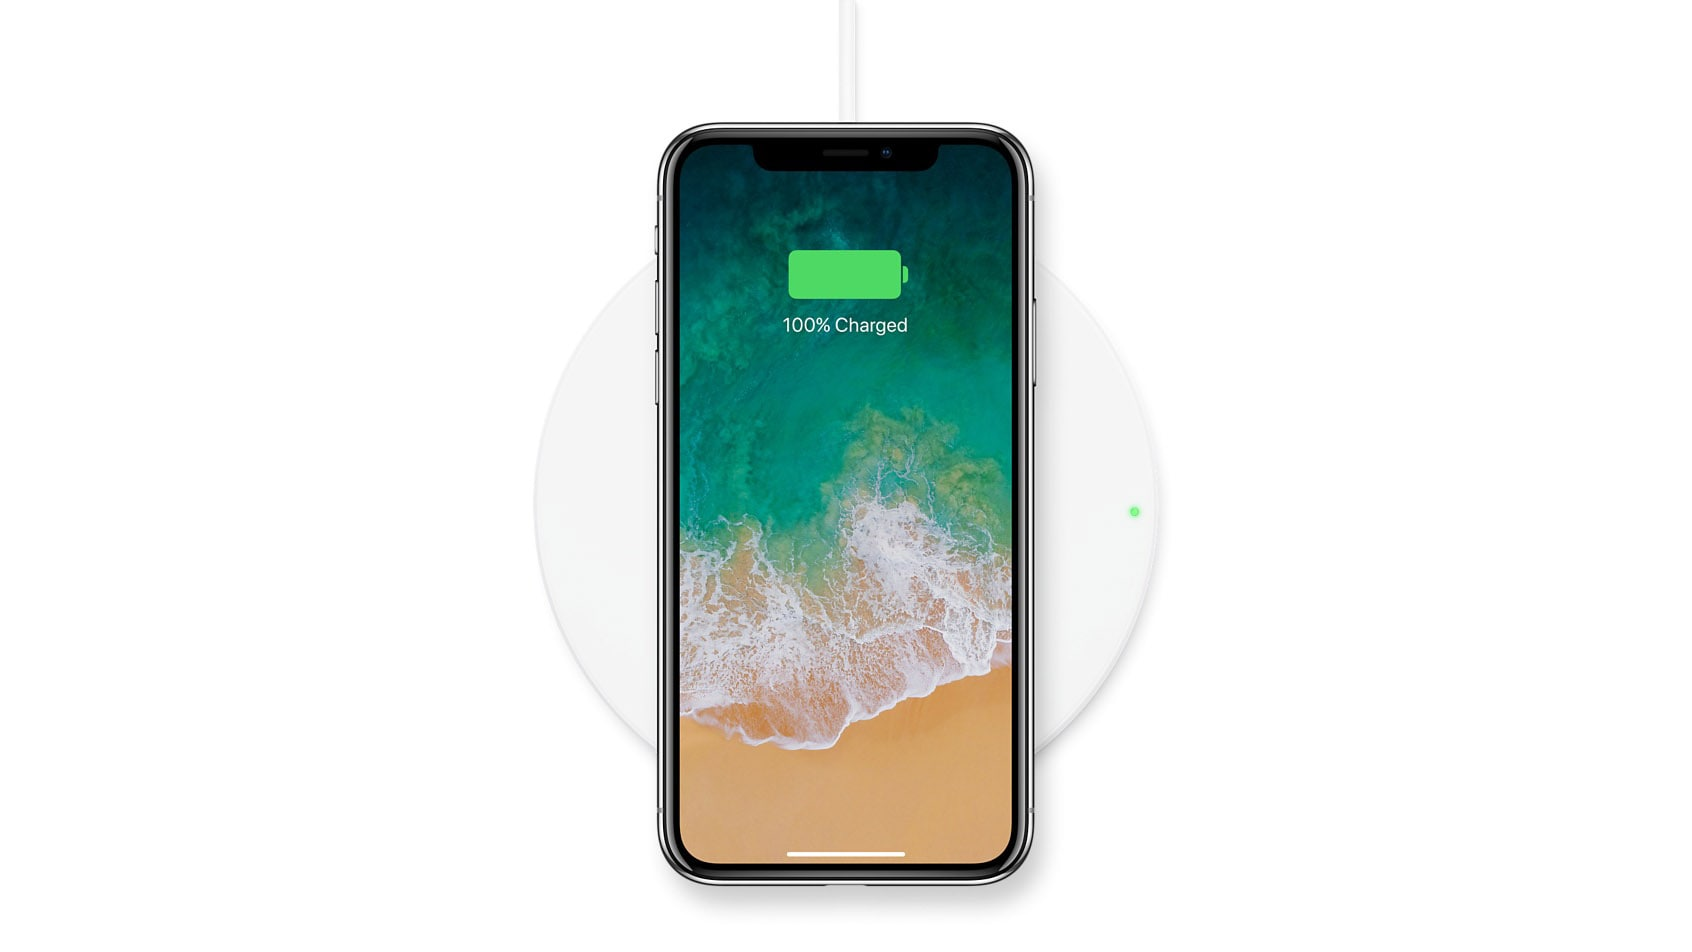 iOS 11.2 Said to Bring Faster Wireless Charging to iPhone X, iPhone 8 and 8 Plus